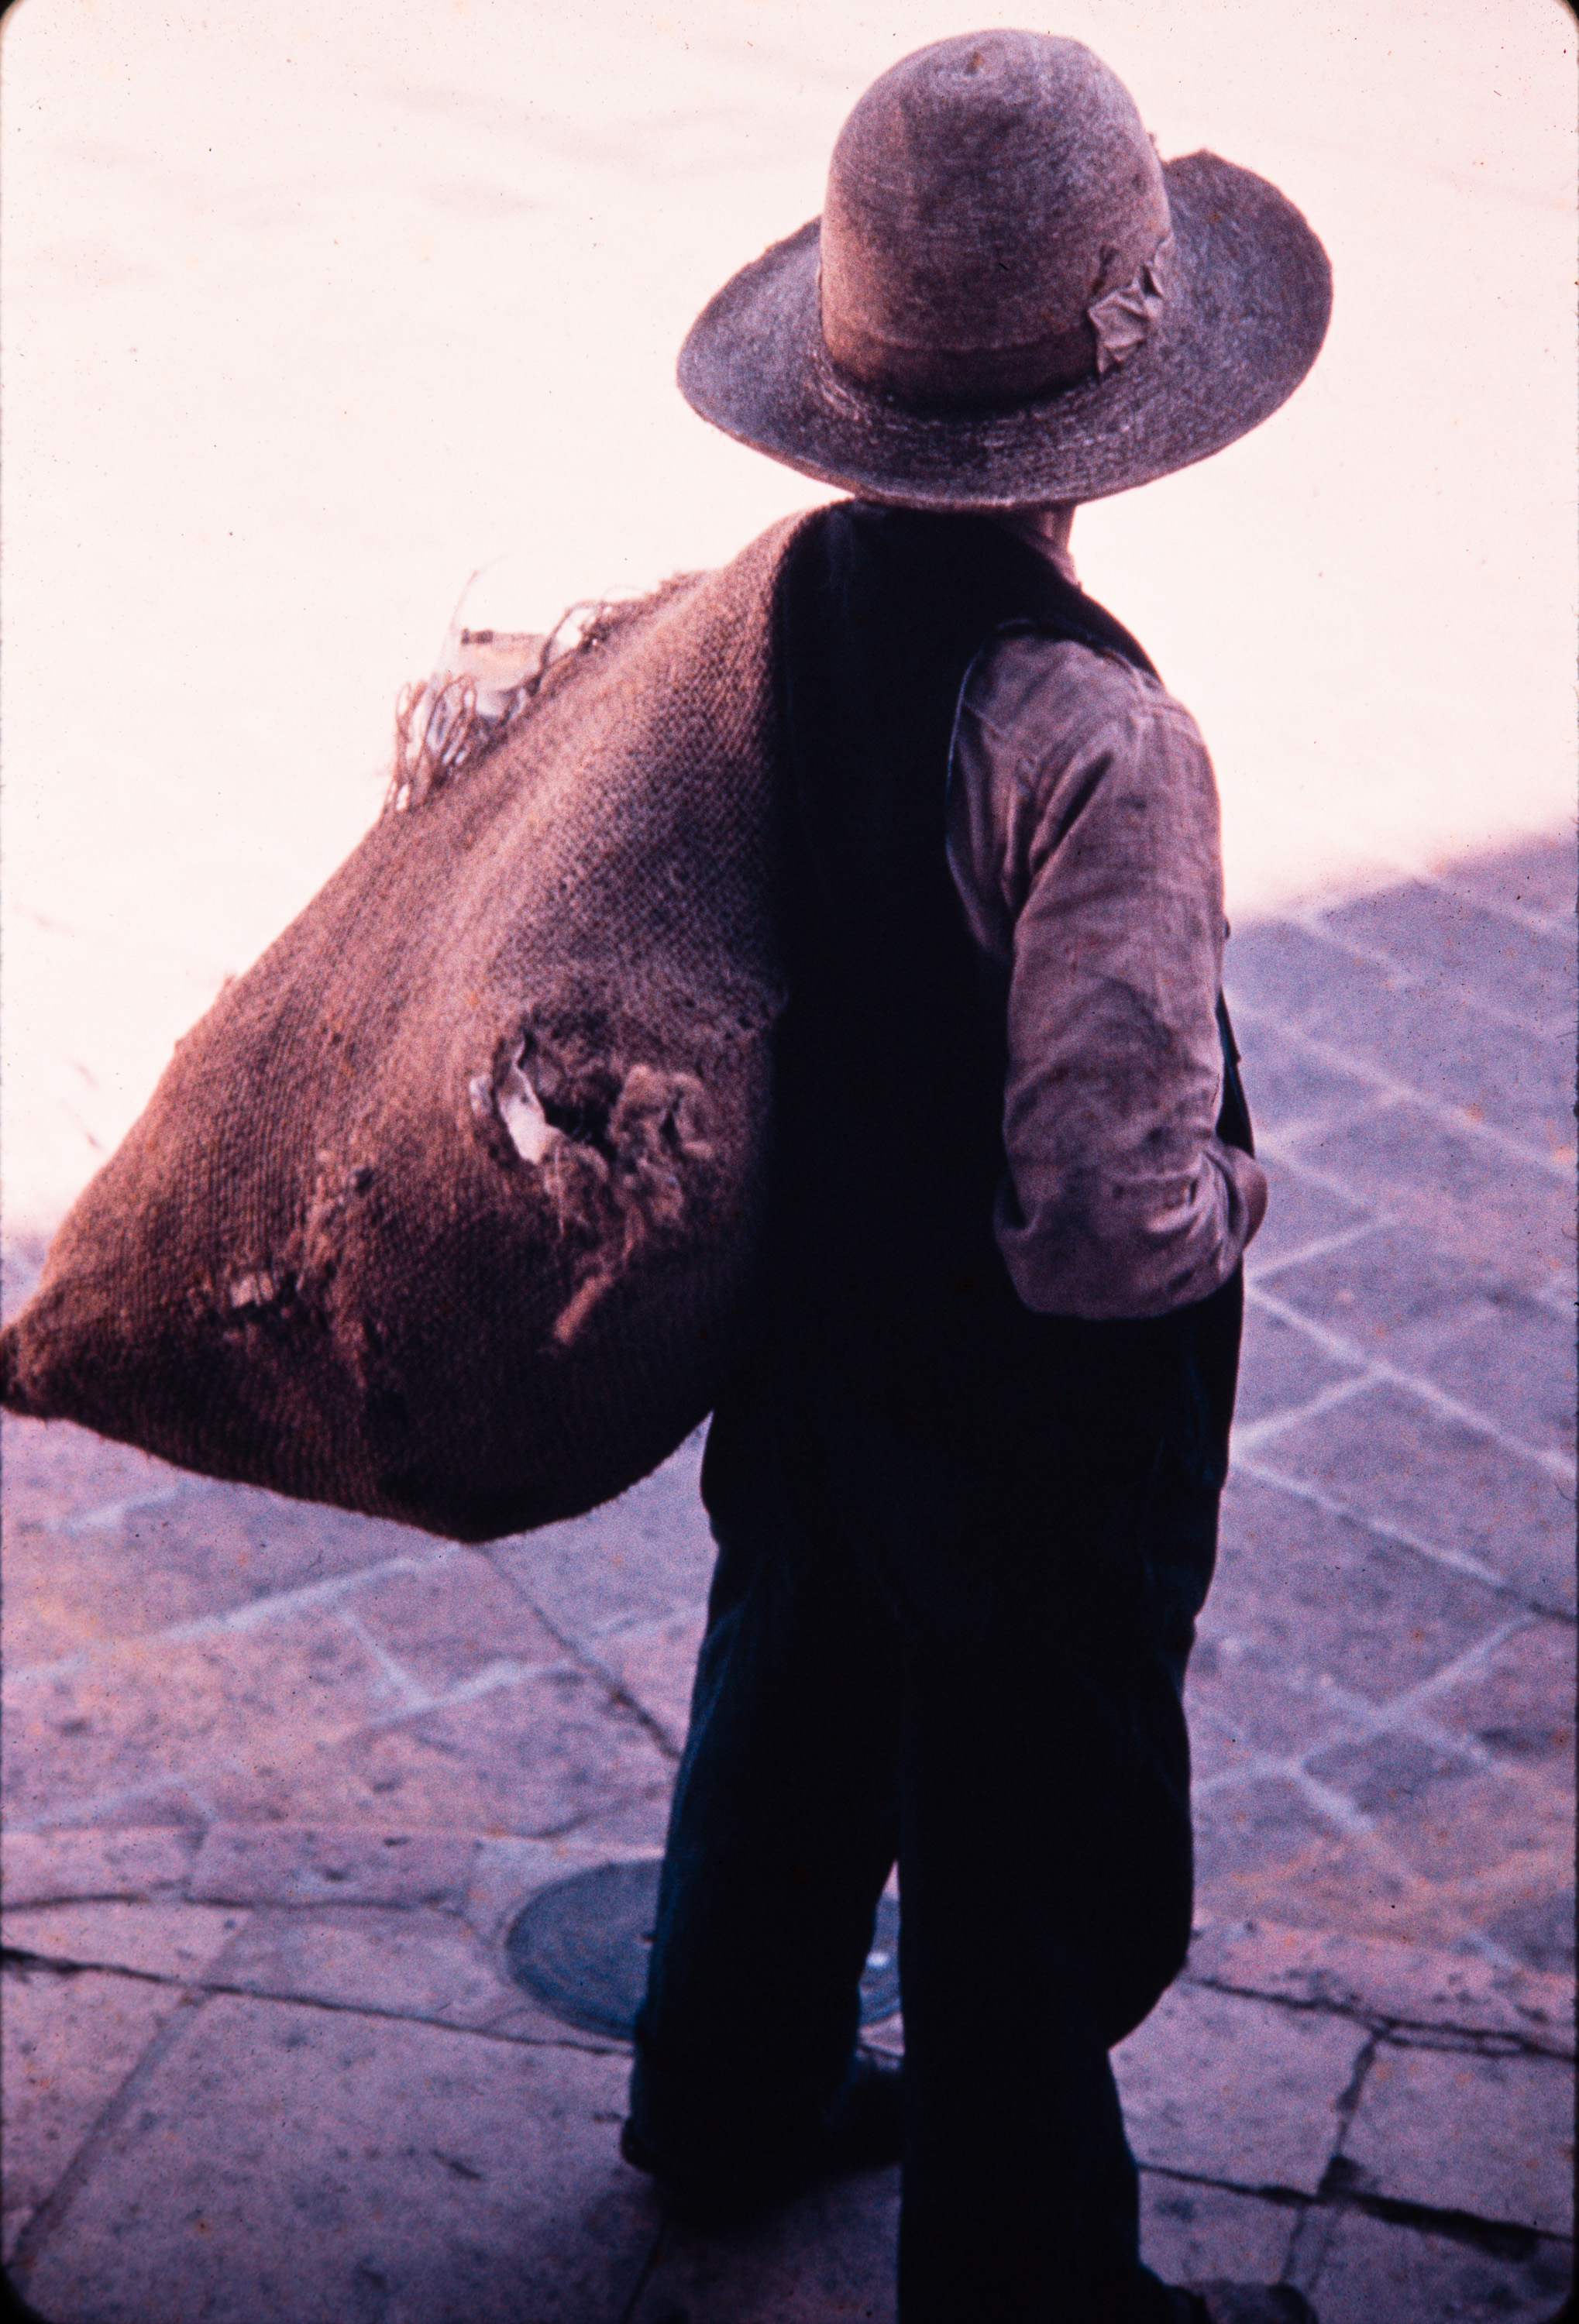 Man with sack, Mexico, 1957